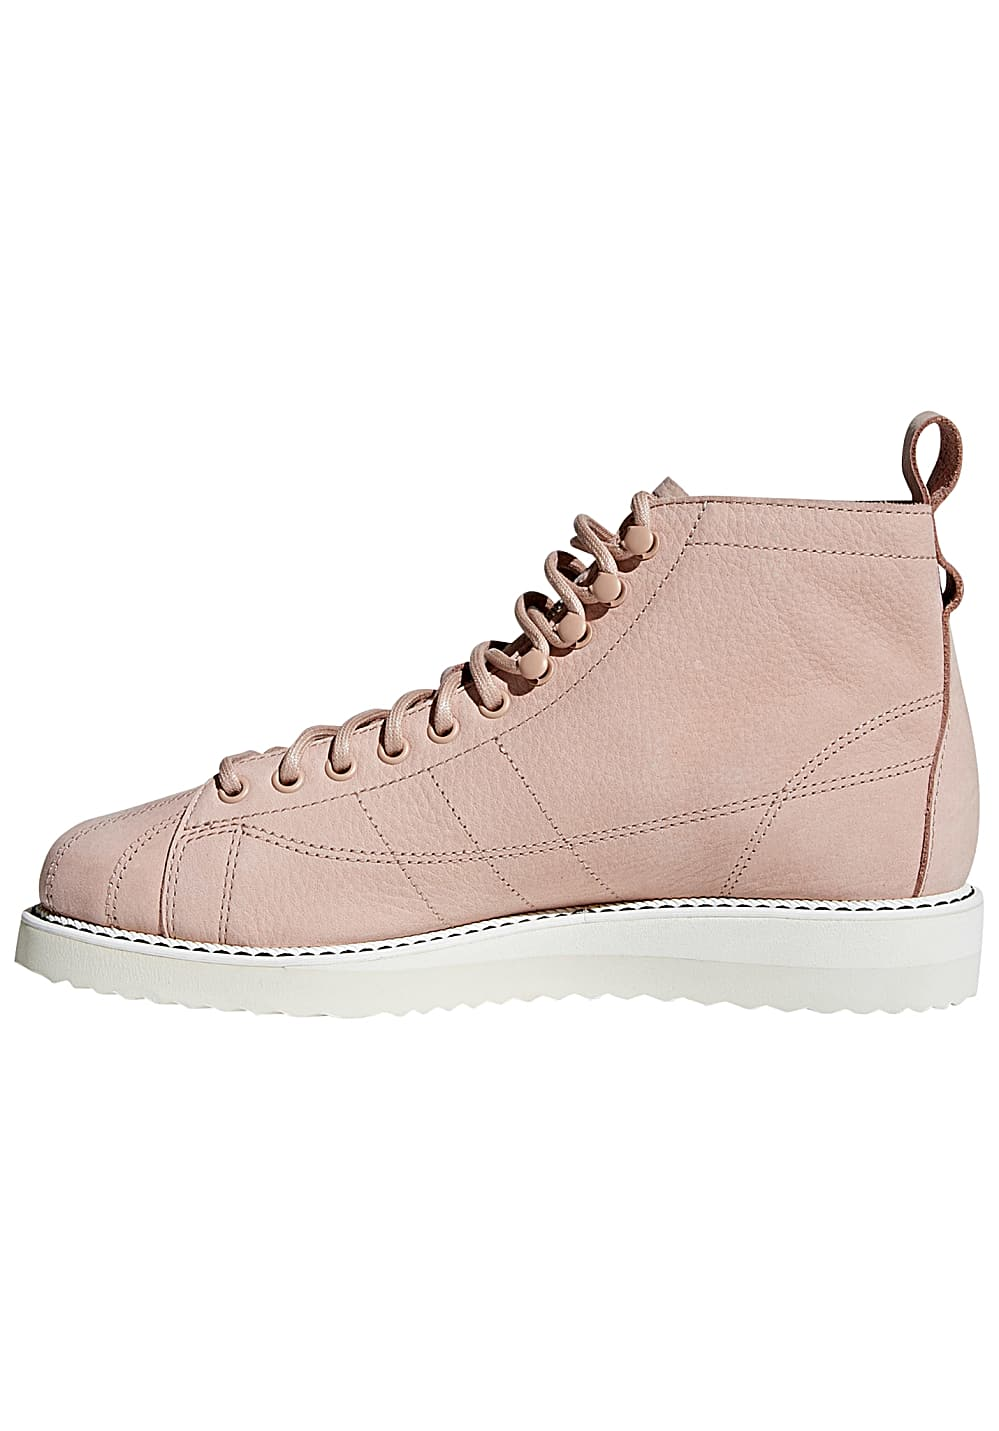 adidas Originals Superstar Boot Sneaker für Damen Pink